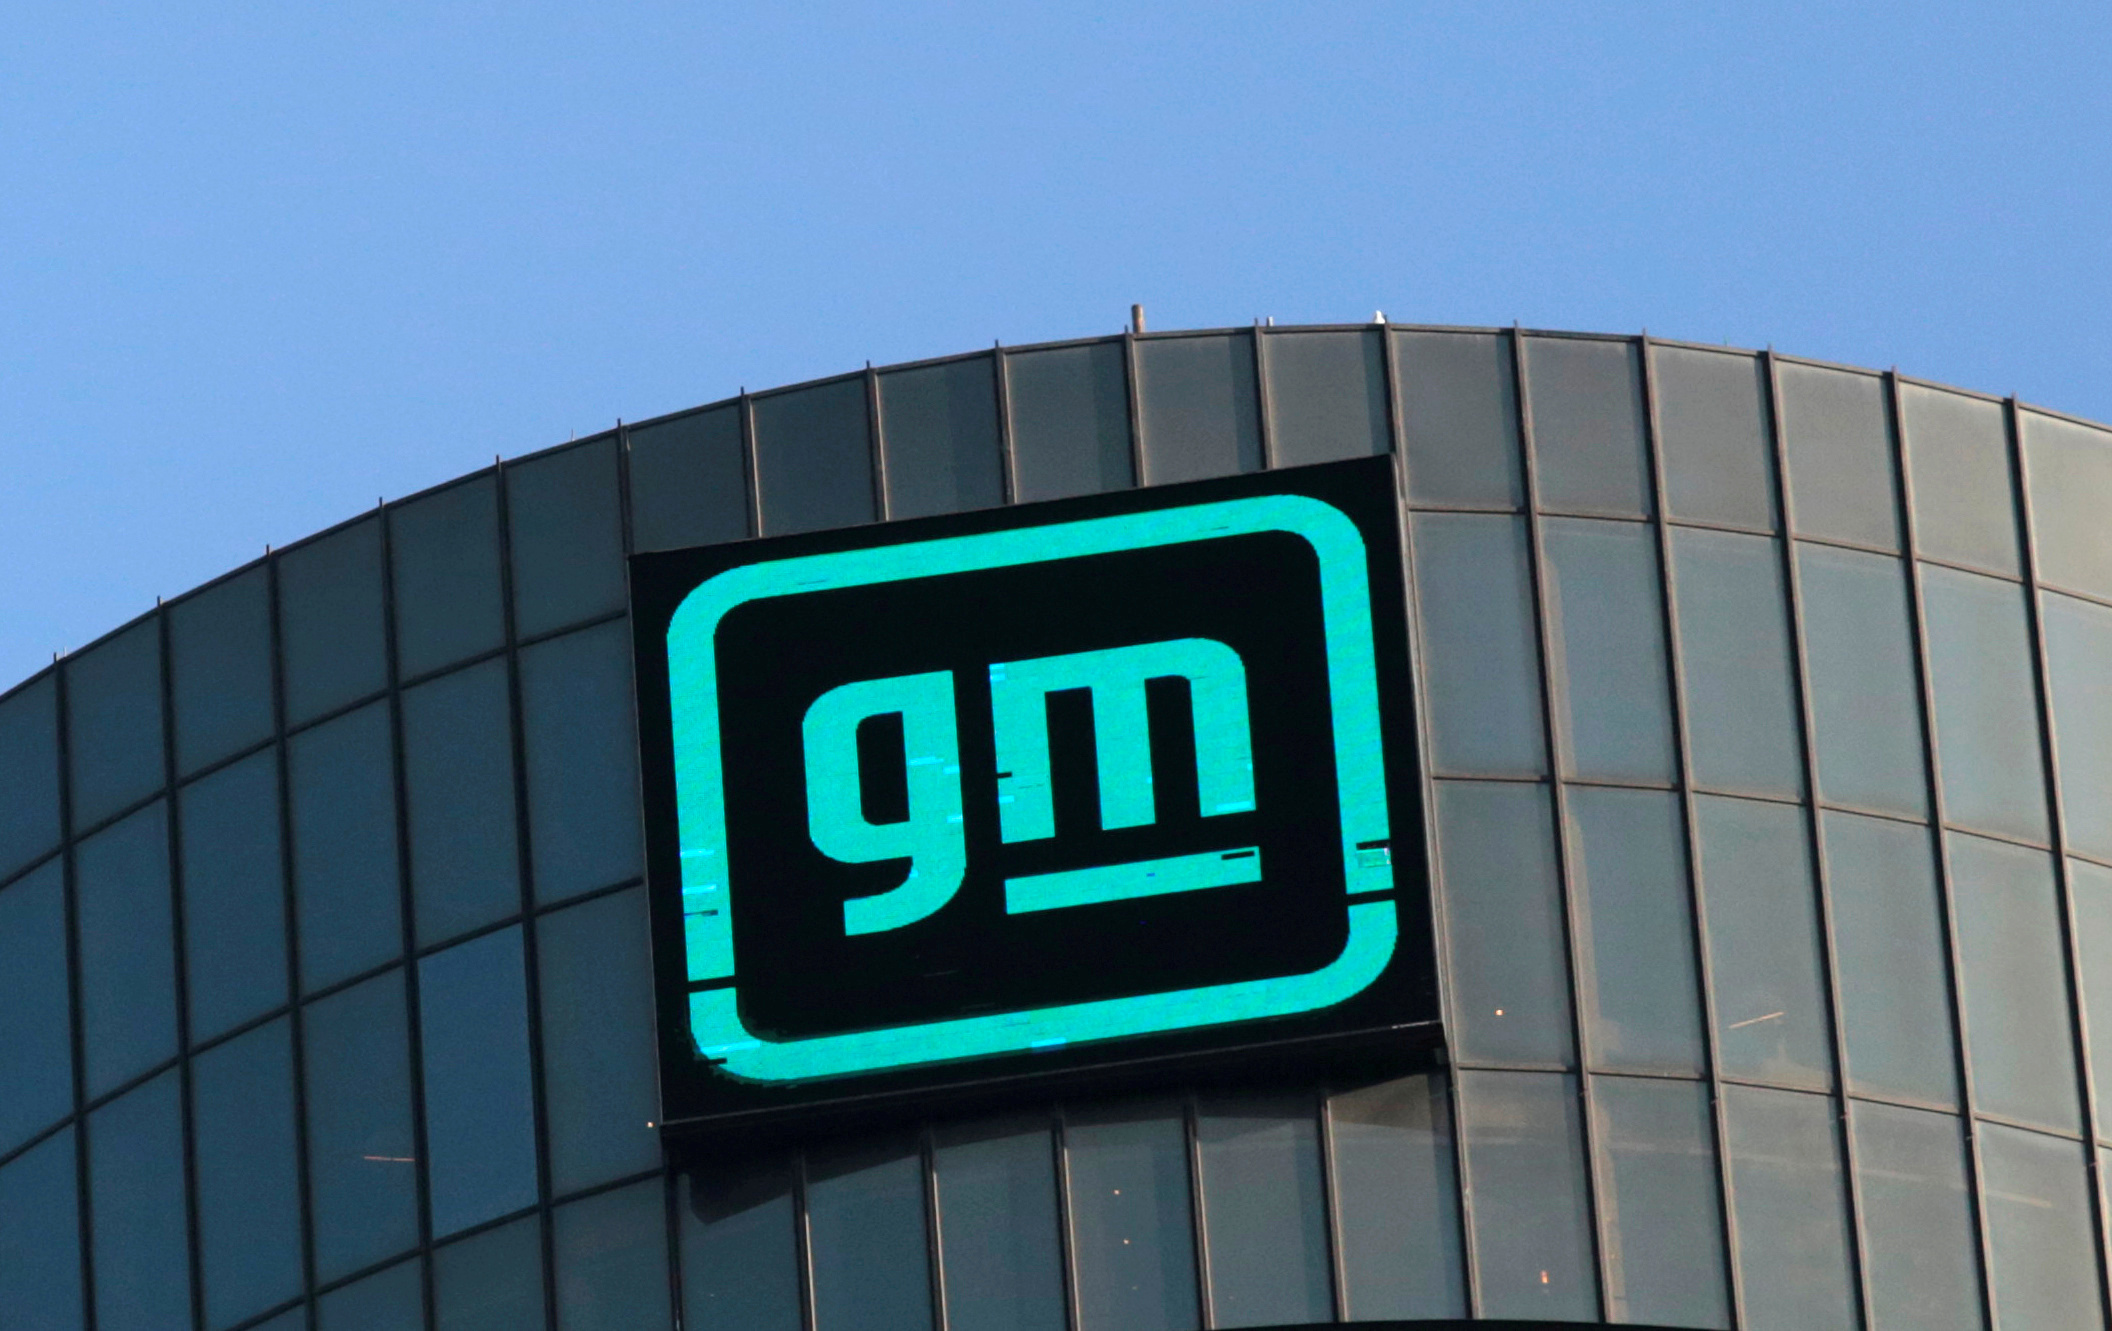 The new GM logo is seen on the facade of the General Motors headquarters in Detroit, Michigan, U.S., March 16, 2021. Picture taken March 16, 2021.  REUTERS/Rebecca Cook